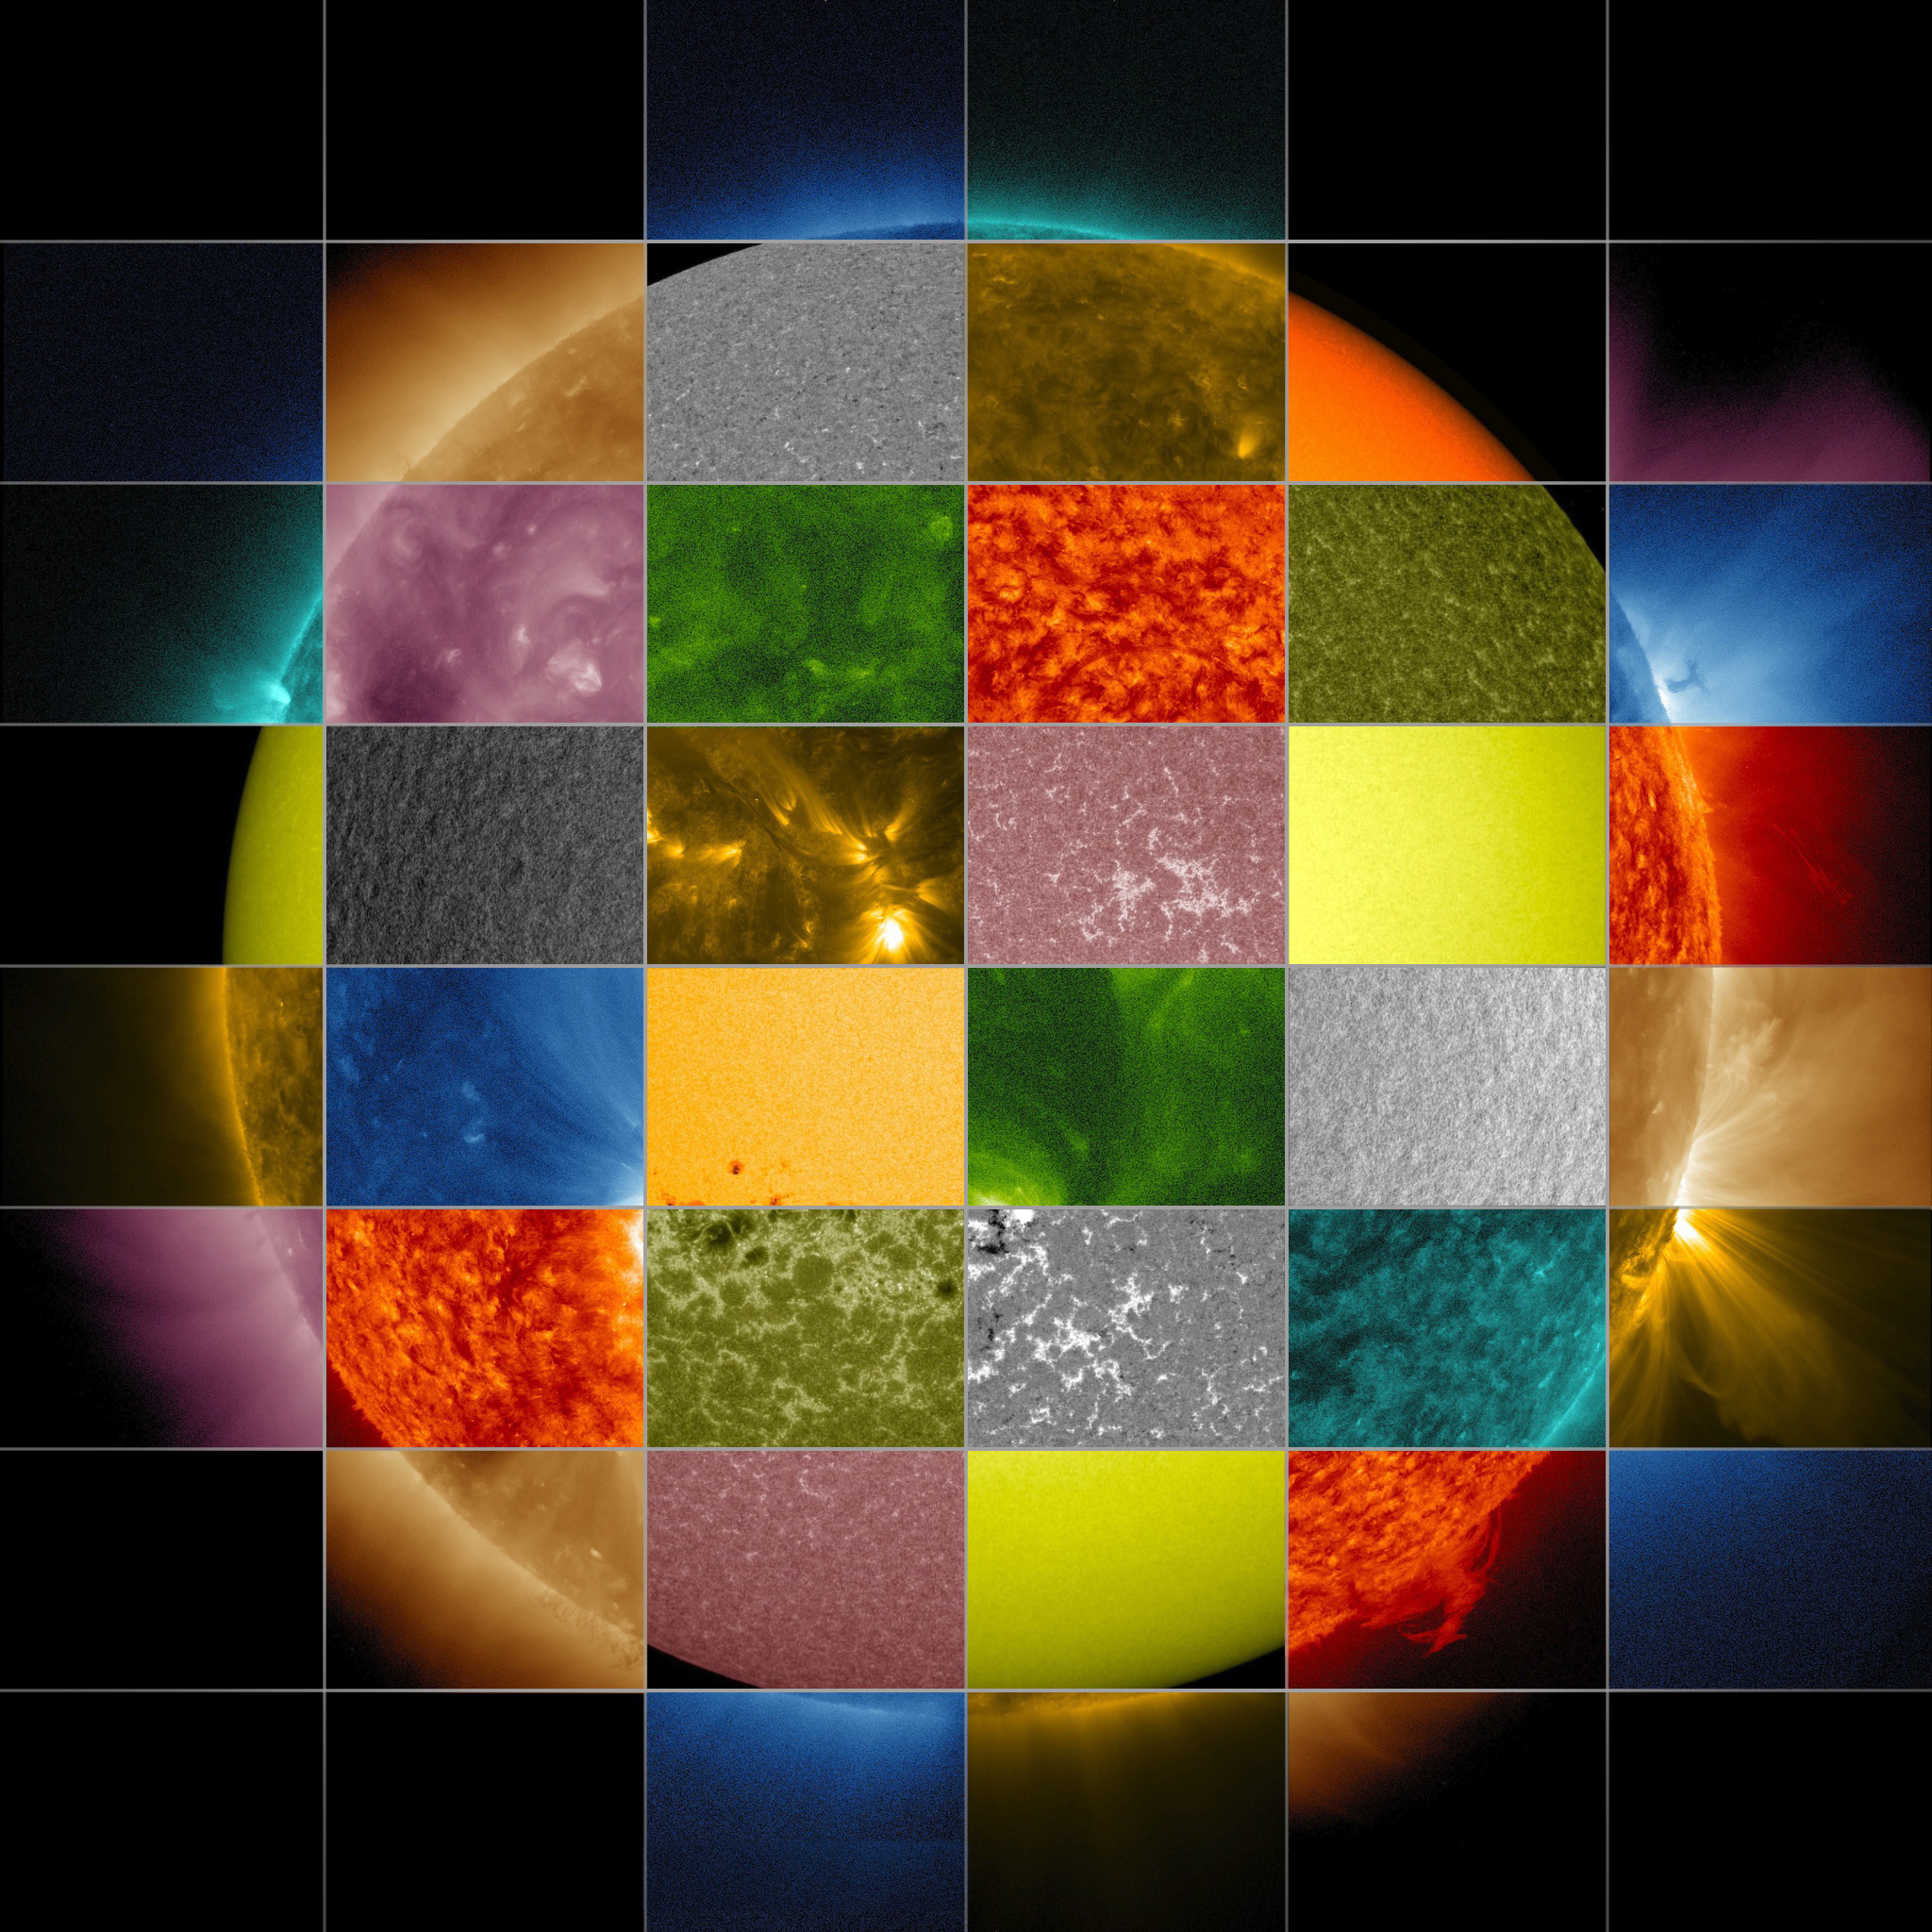 Sun Primer Why NASA Scientists Observe The In Different Wavelengths